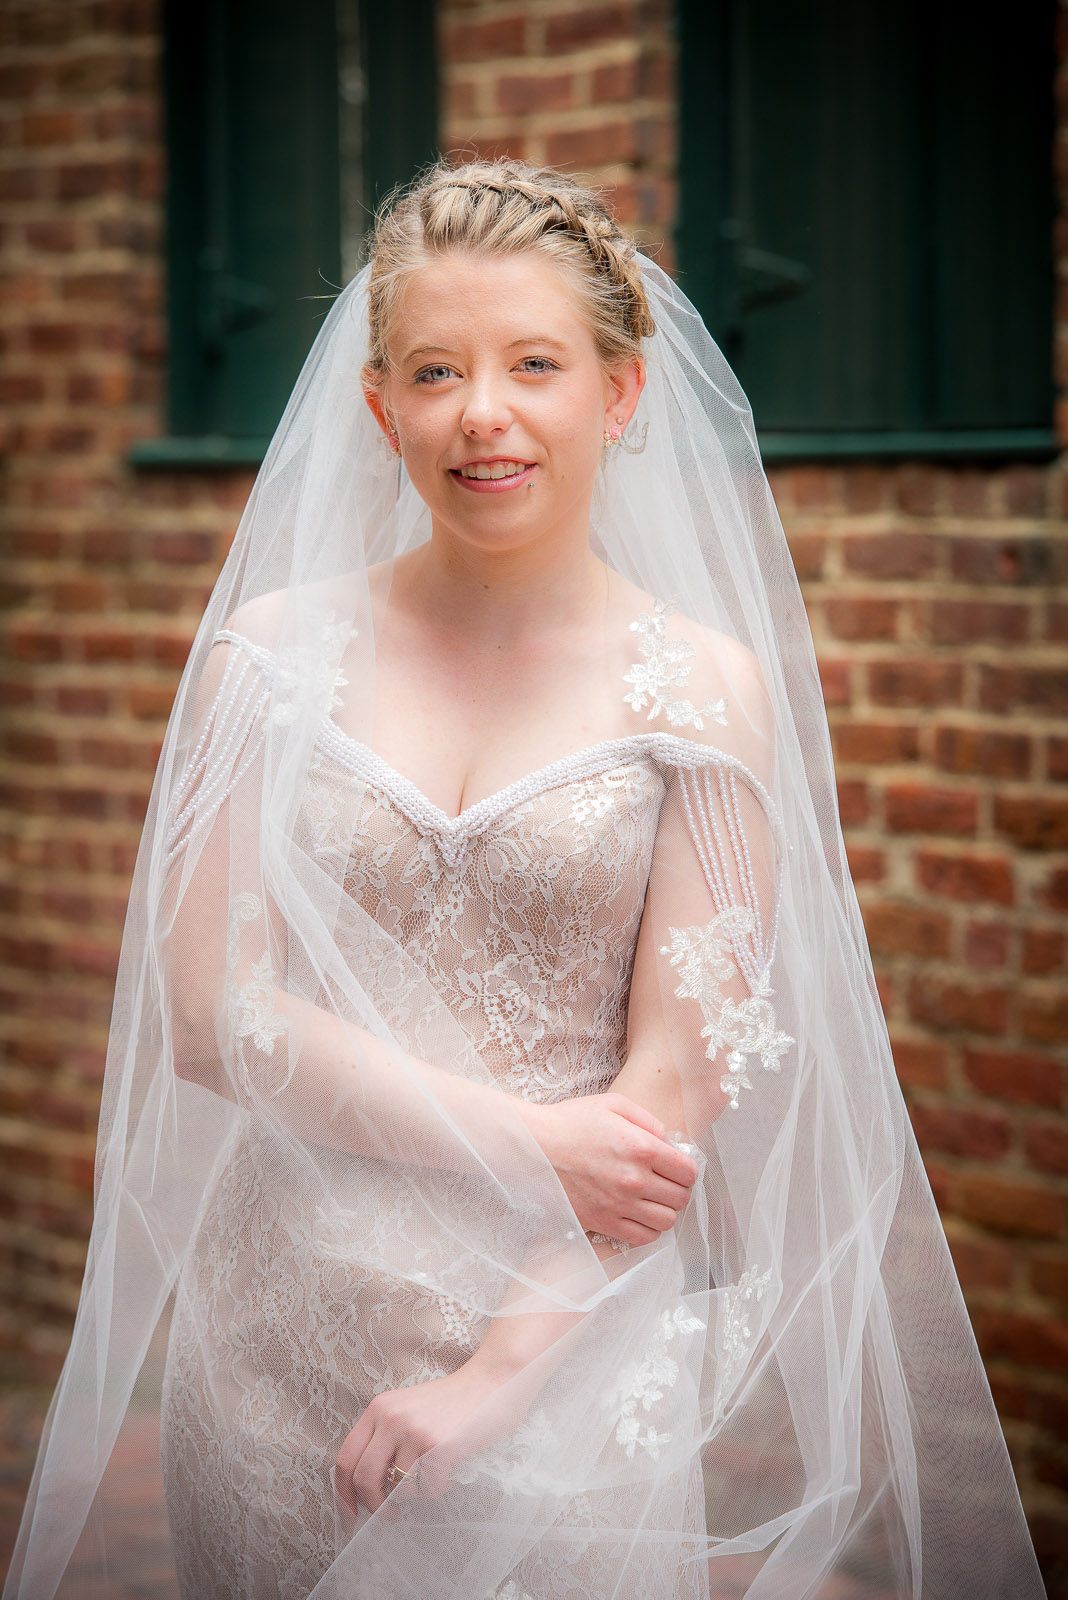 Eric_and_Christy_Photography_Blog_2016_Best_Wedding_Portraits-8